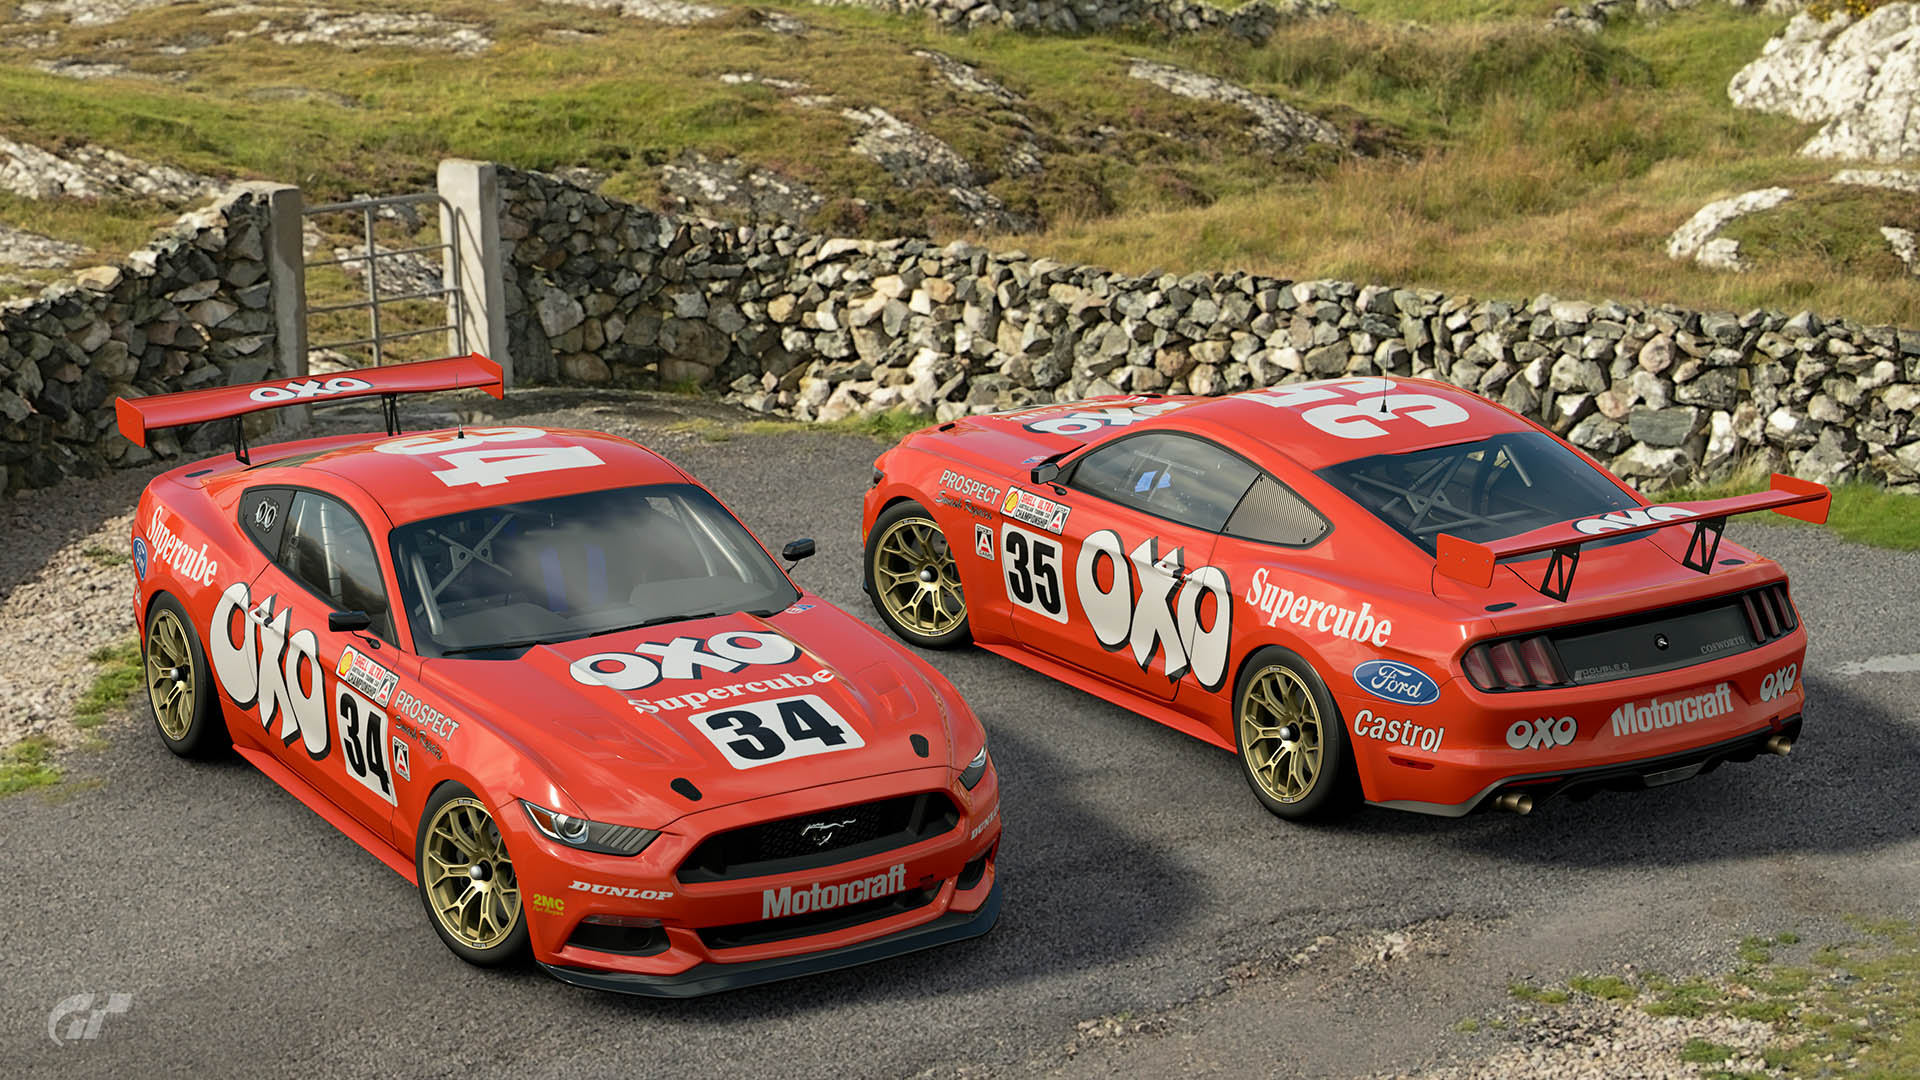 Oxo Motorsport 1987 ATCC Ford Mustang Liveries